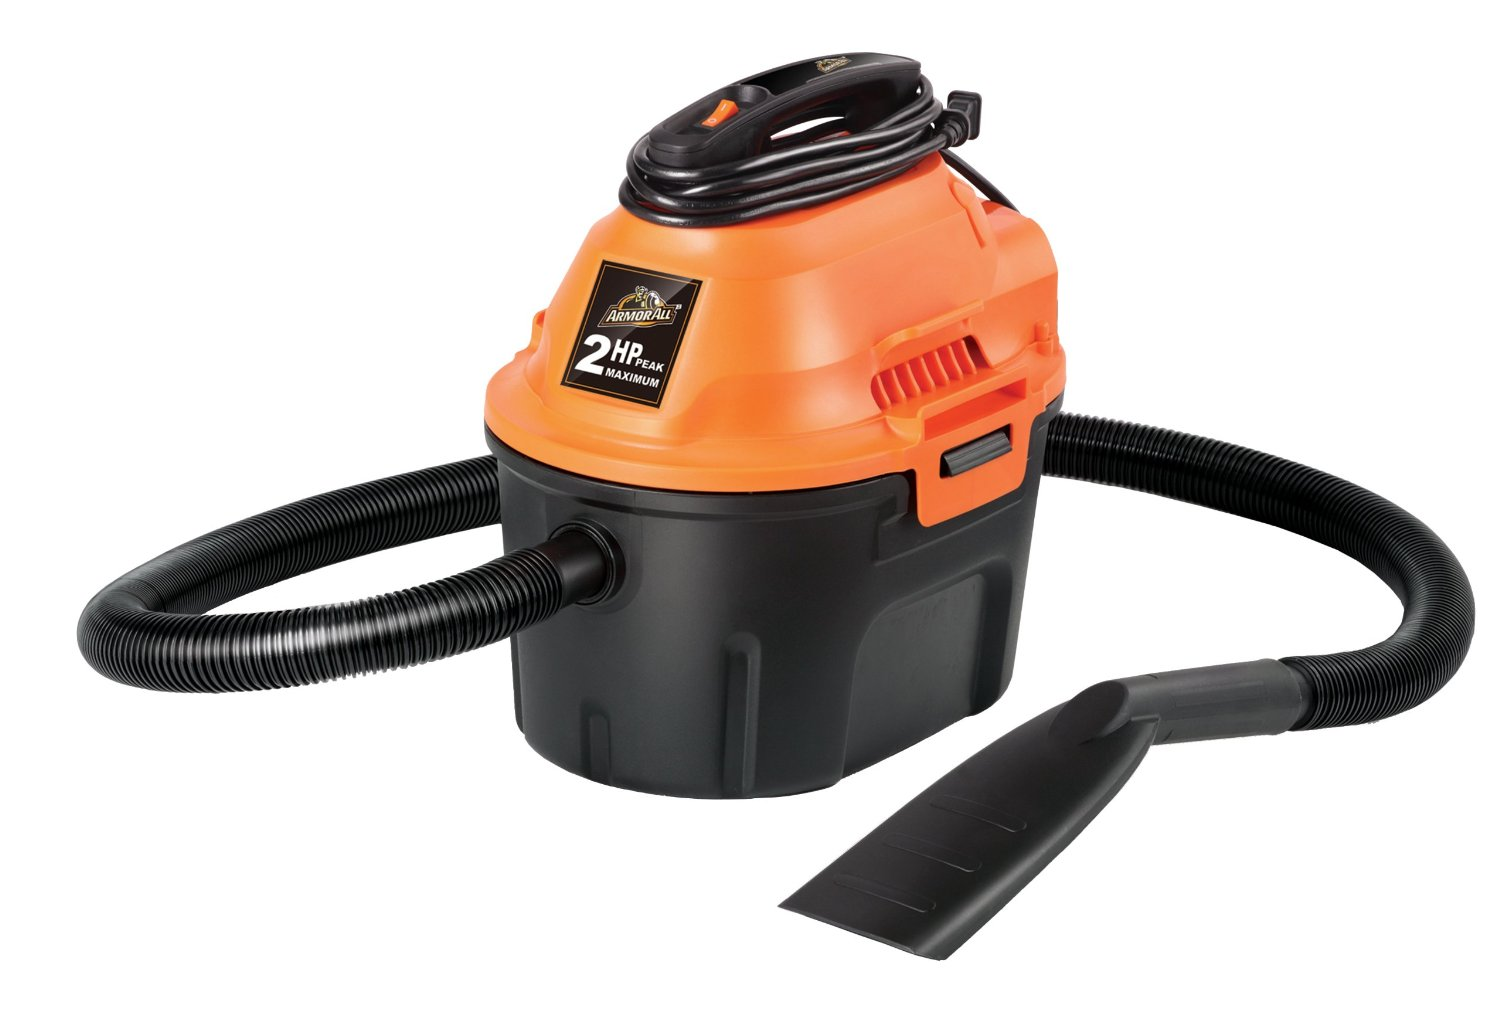 Armor All 2.5 Gallon Wet/Dry Vacuum